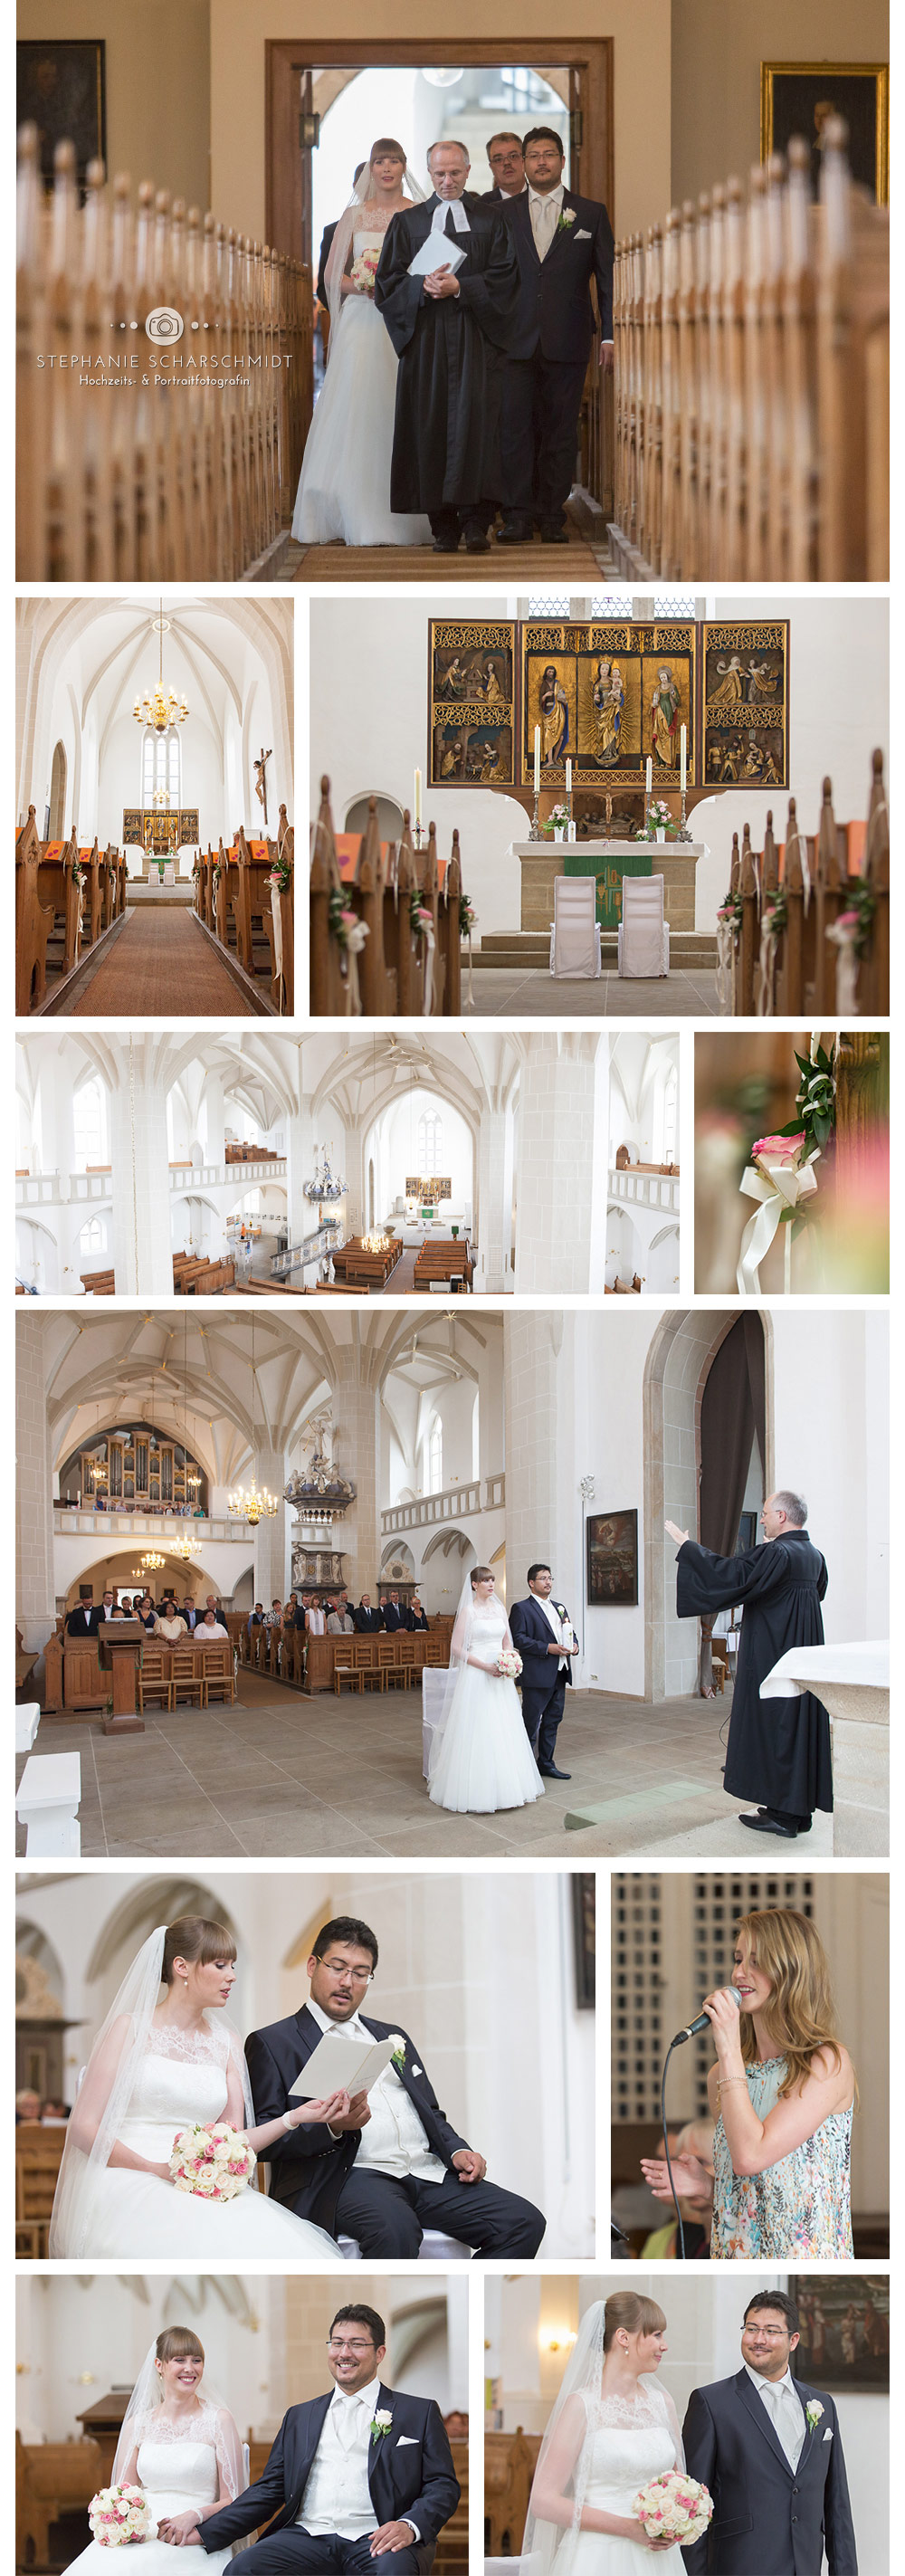 Heiraten in der Johanniskirche in Plauen